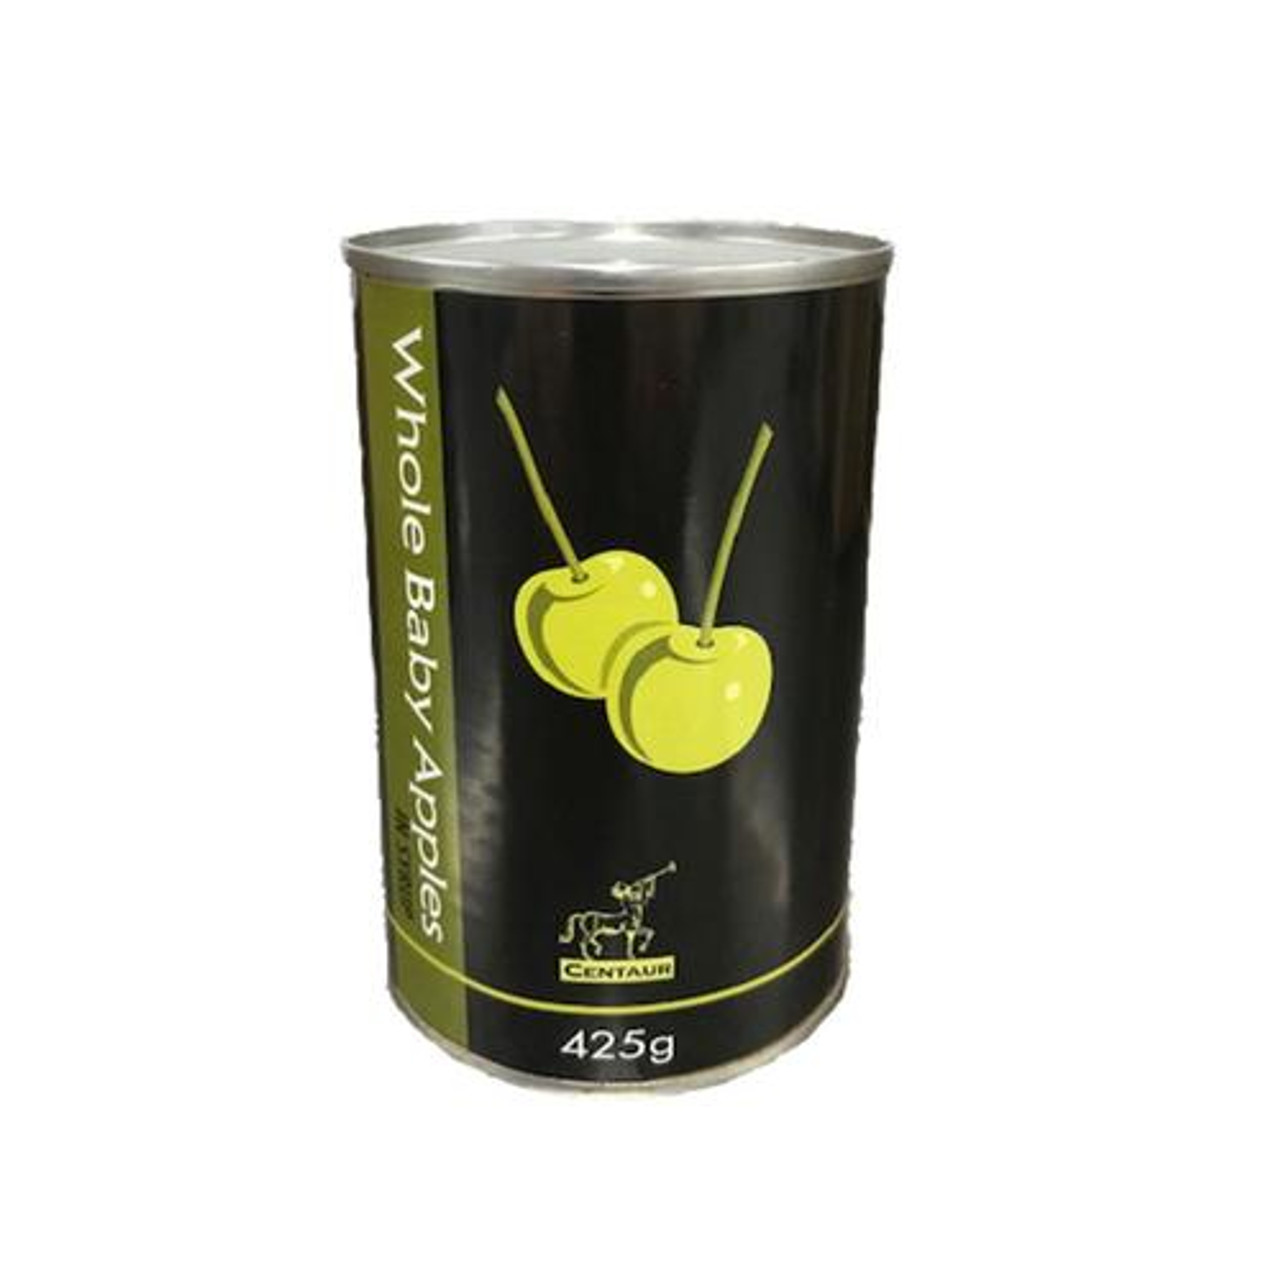 Centaur - Whole Baby Apples in Syrup - 425g